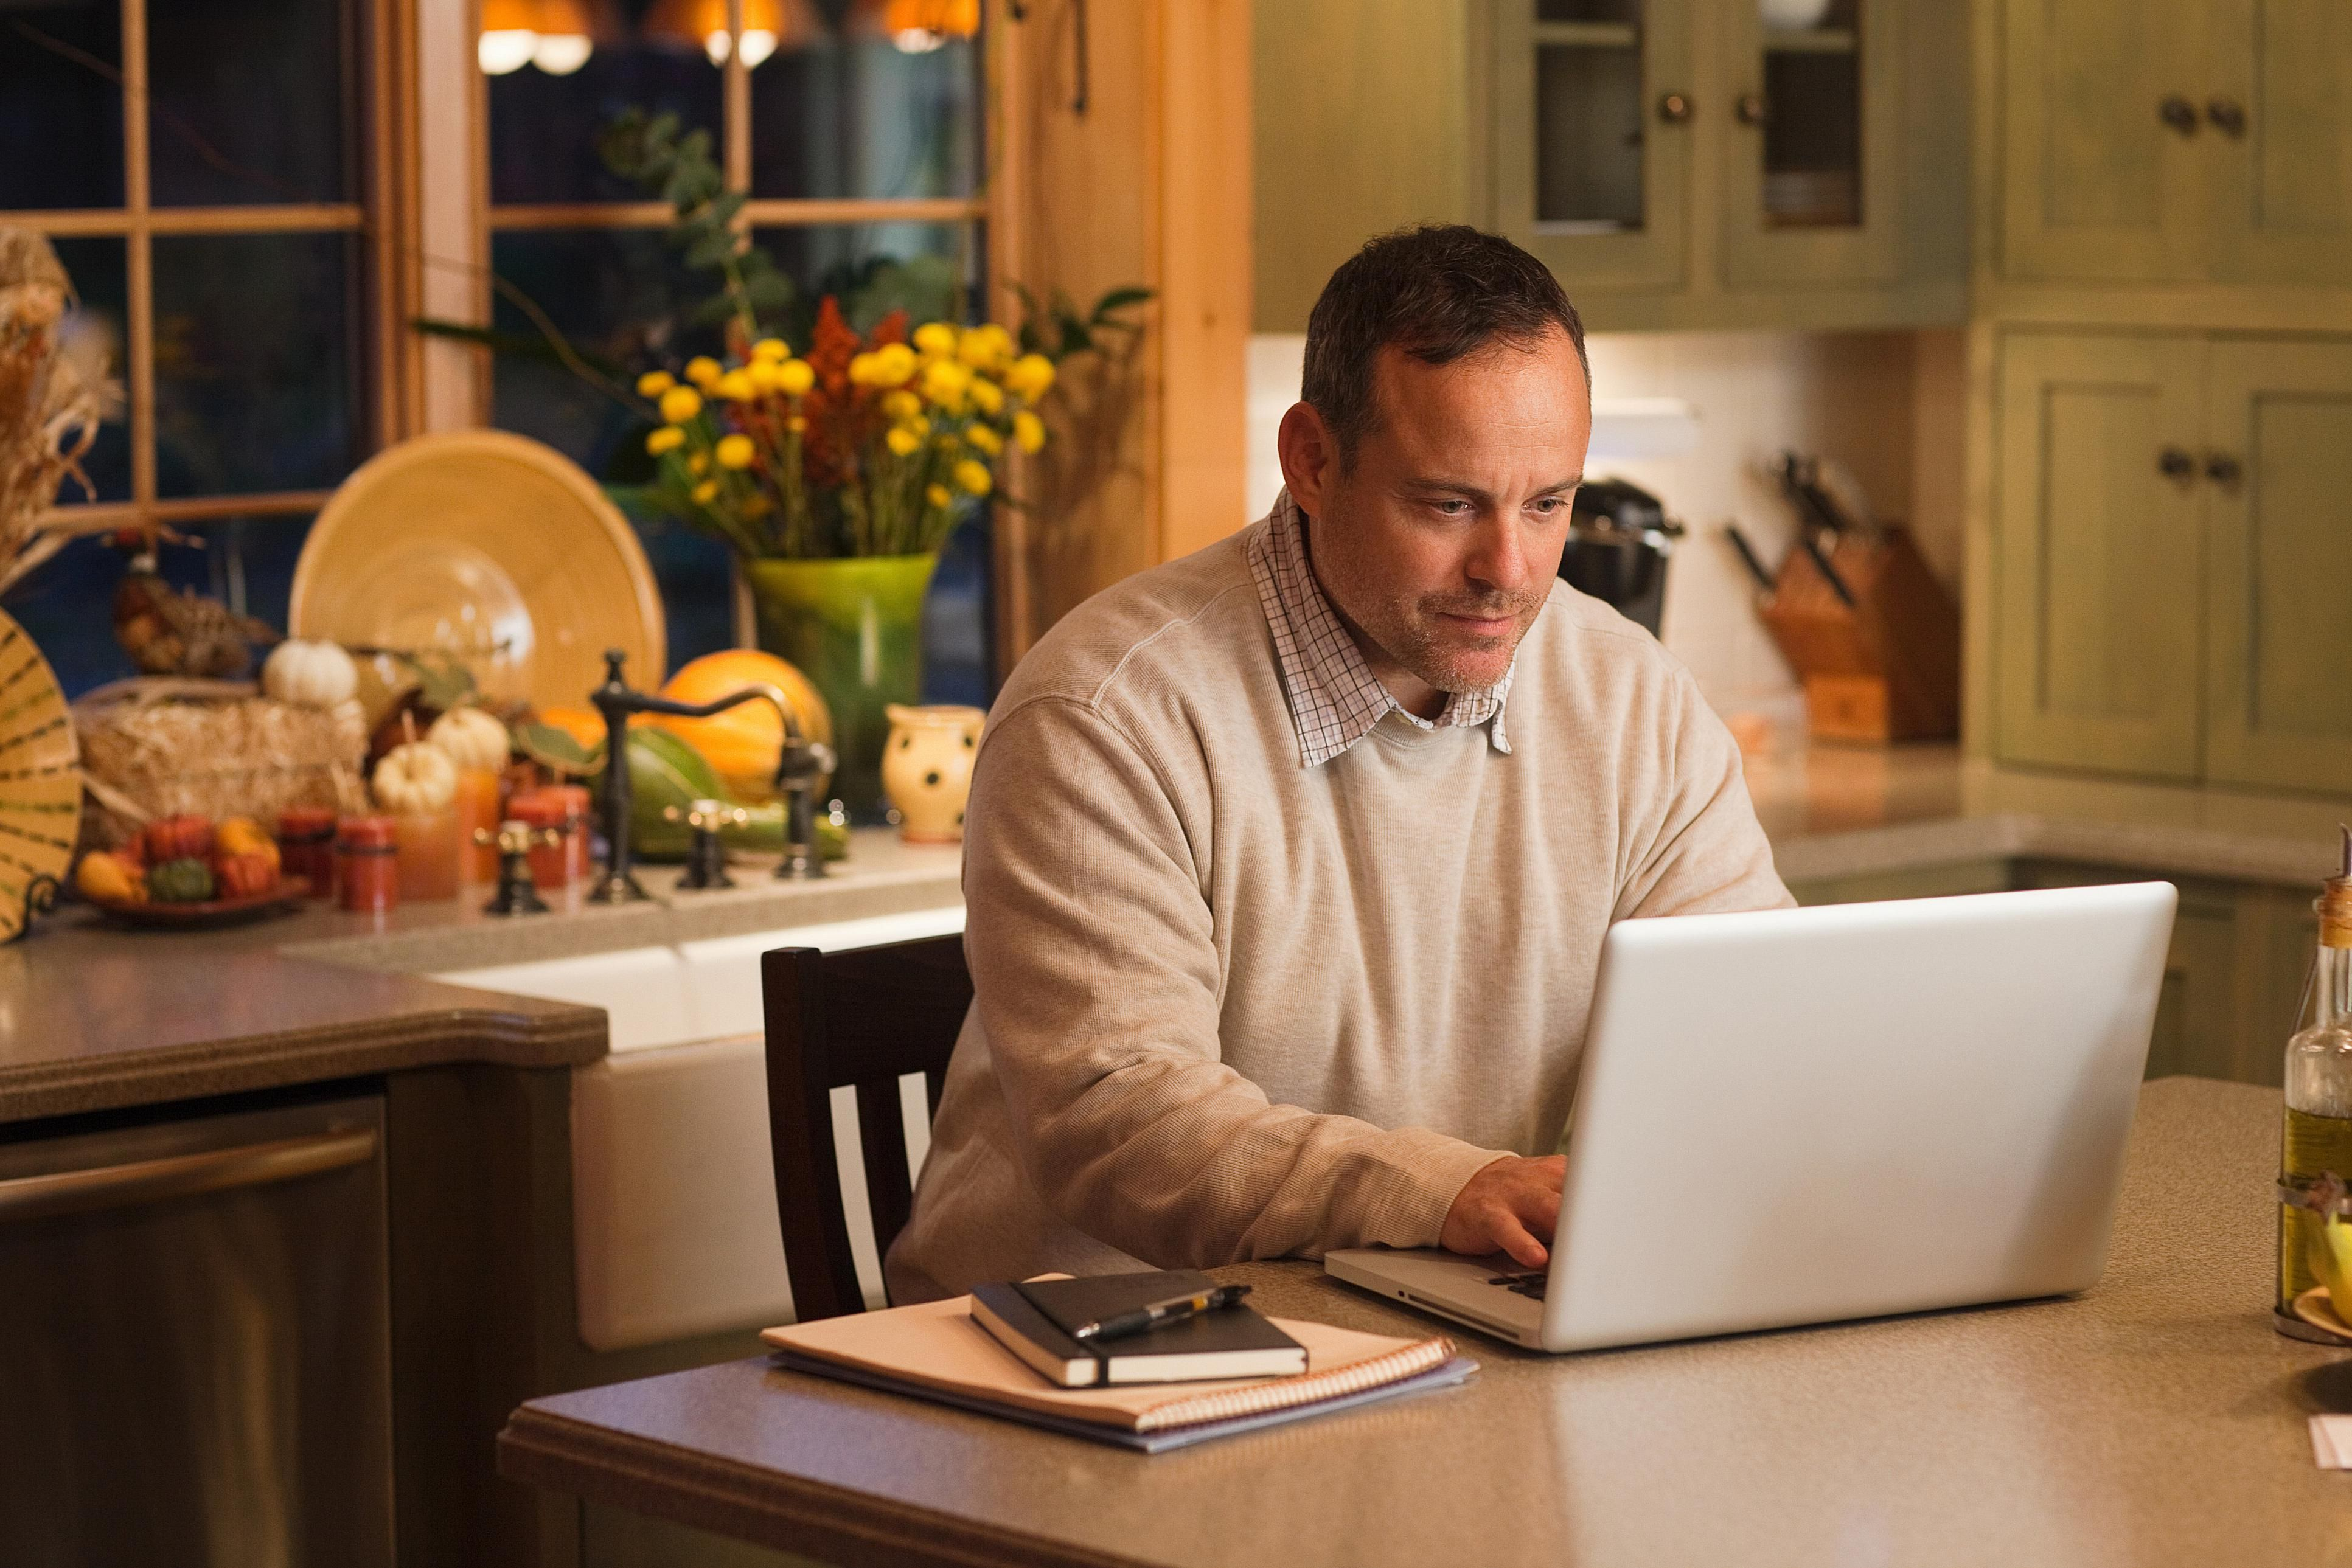 A man working on his laptop in his kitchen office